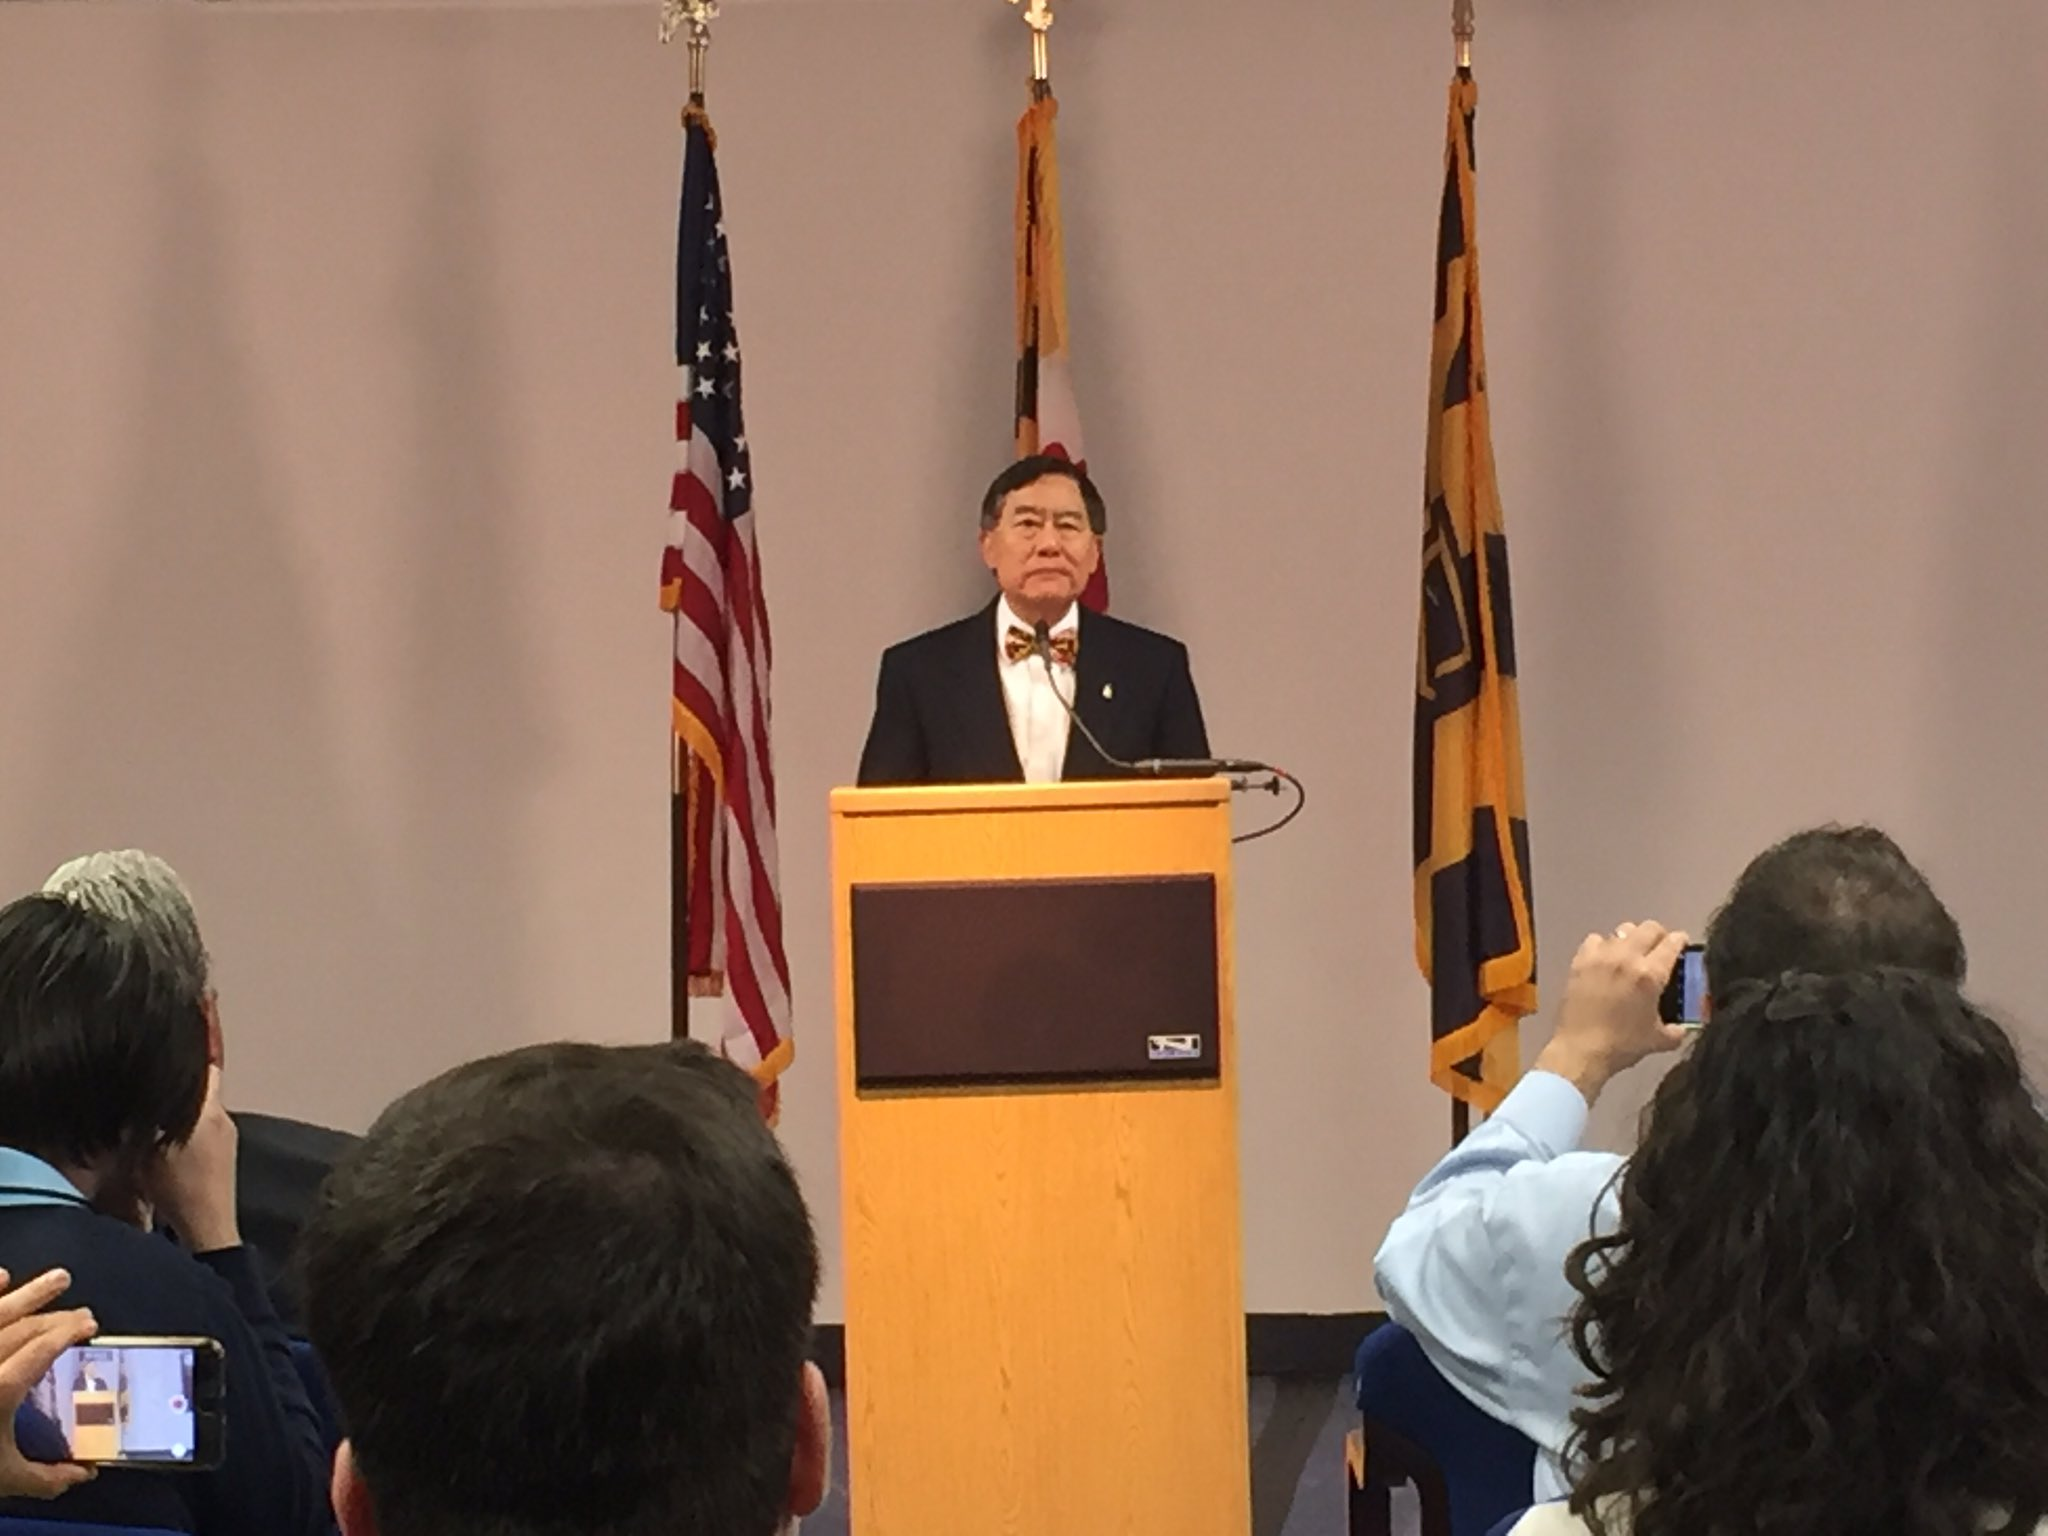 University of Maryland President Wallace Loh announces his retirement to media members. (Danielle Stein/Capital News Service)